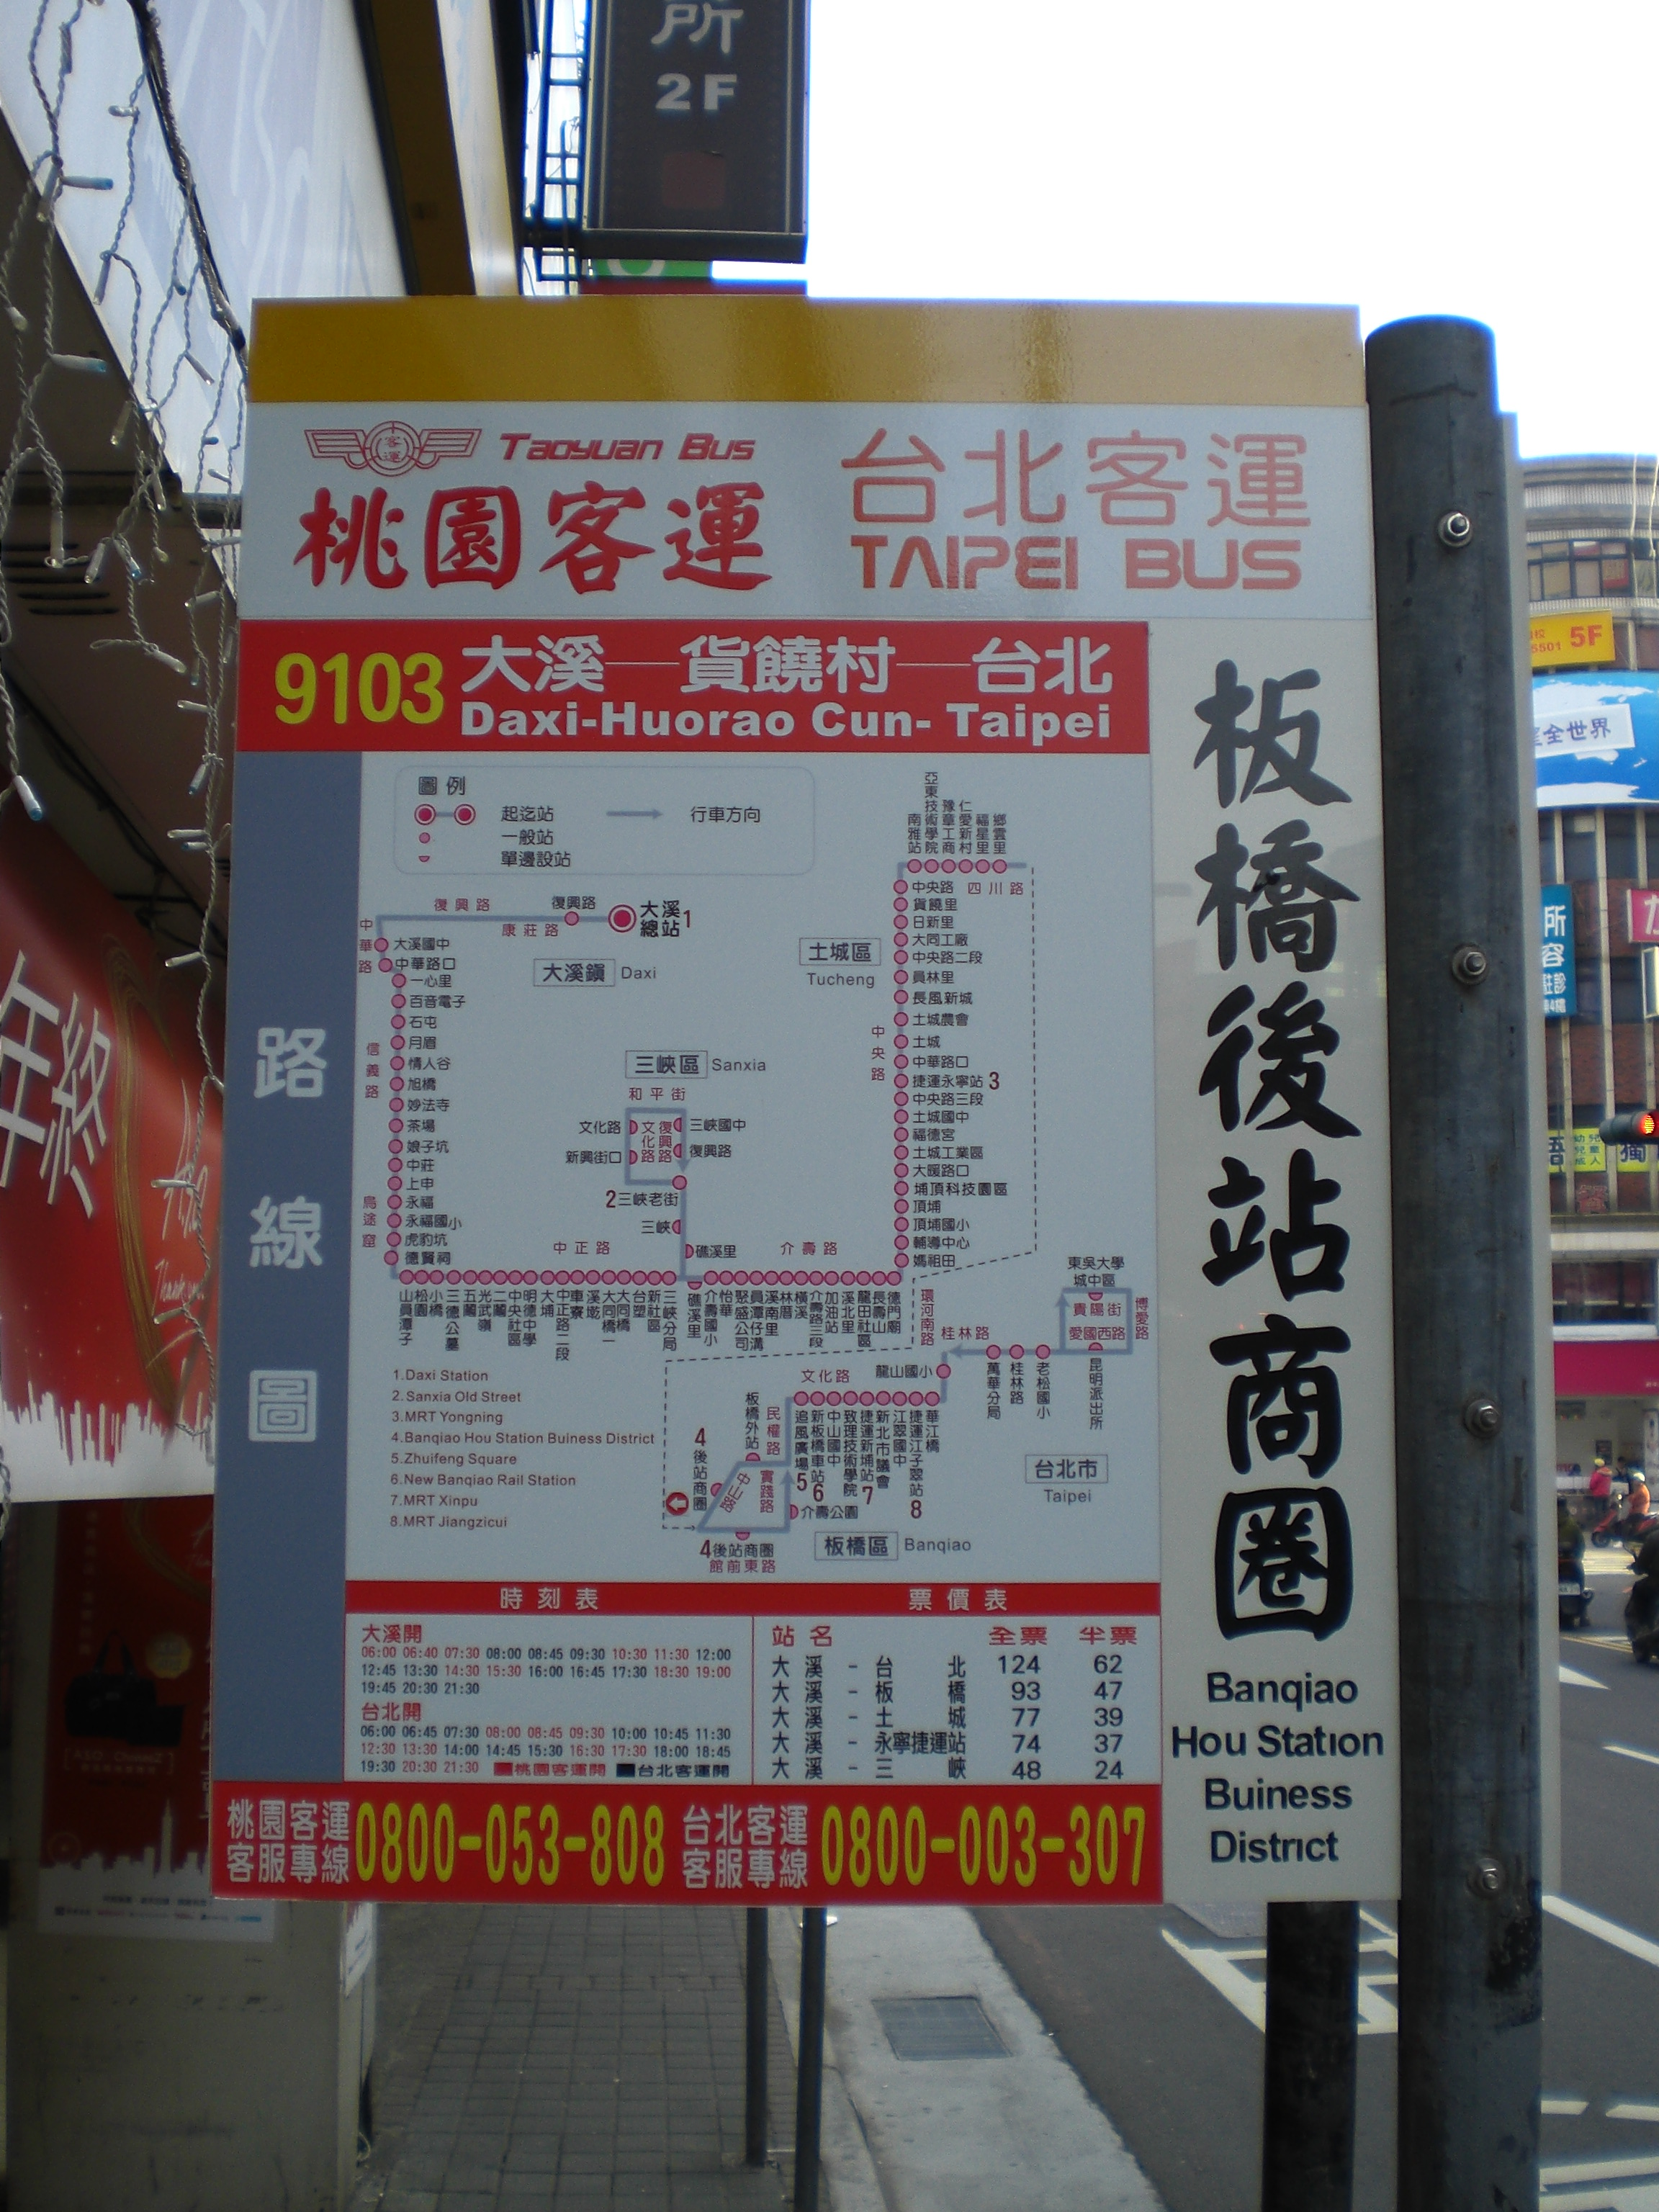 Bus Stop Board Taipei Bus 9103 Stop Board